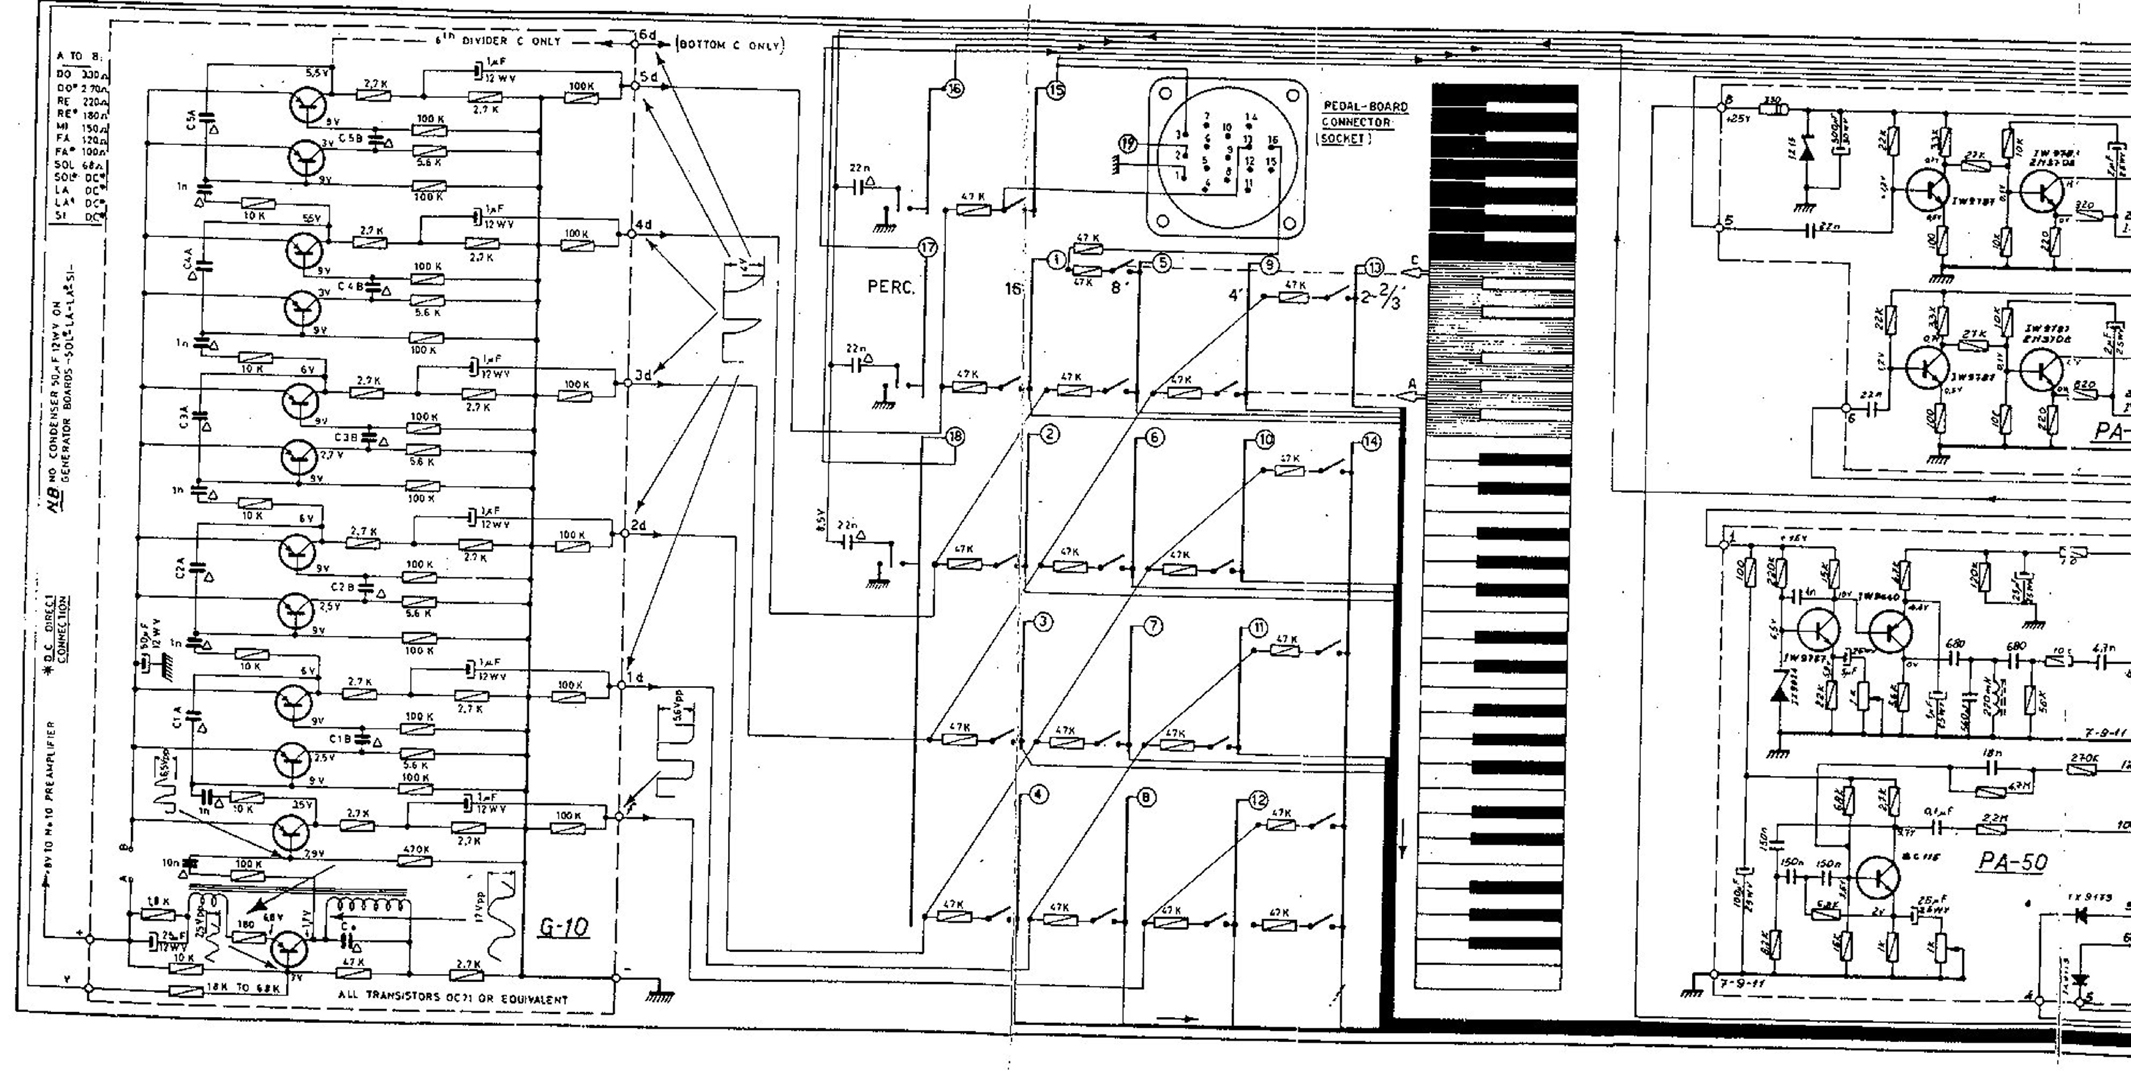 deluxe 1 b farfisa compact deluxe schematics farfisa org farfisa wiring diagram at panicattacktreatment.co